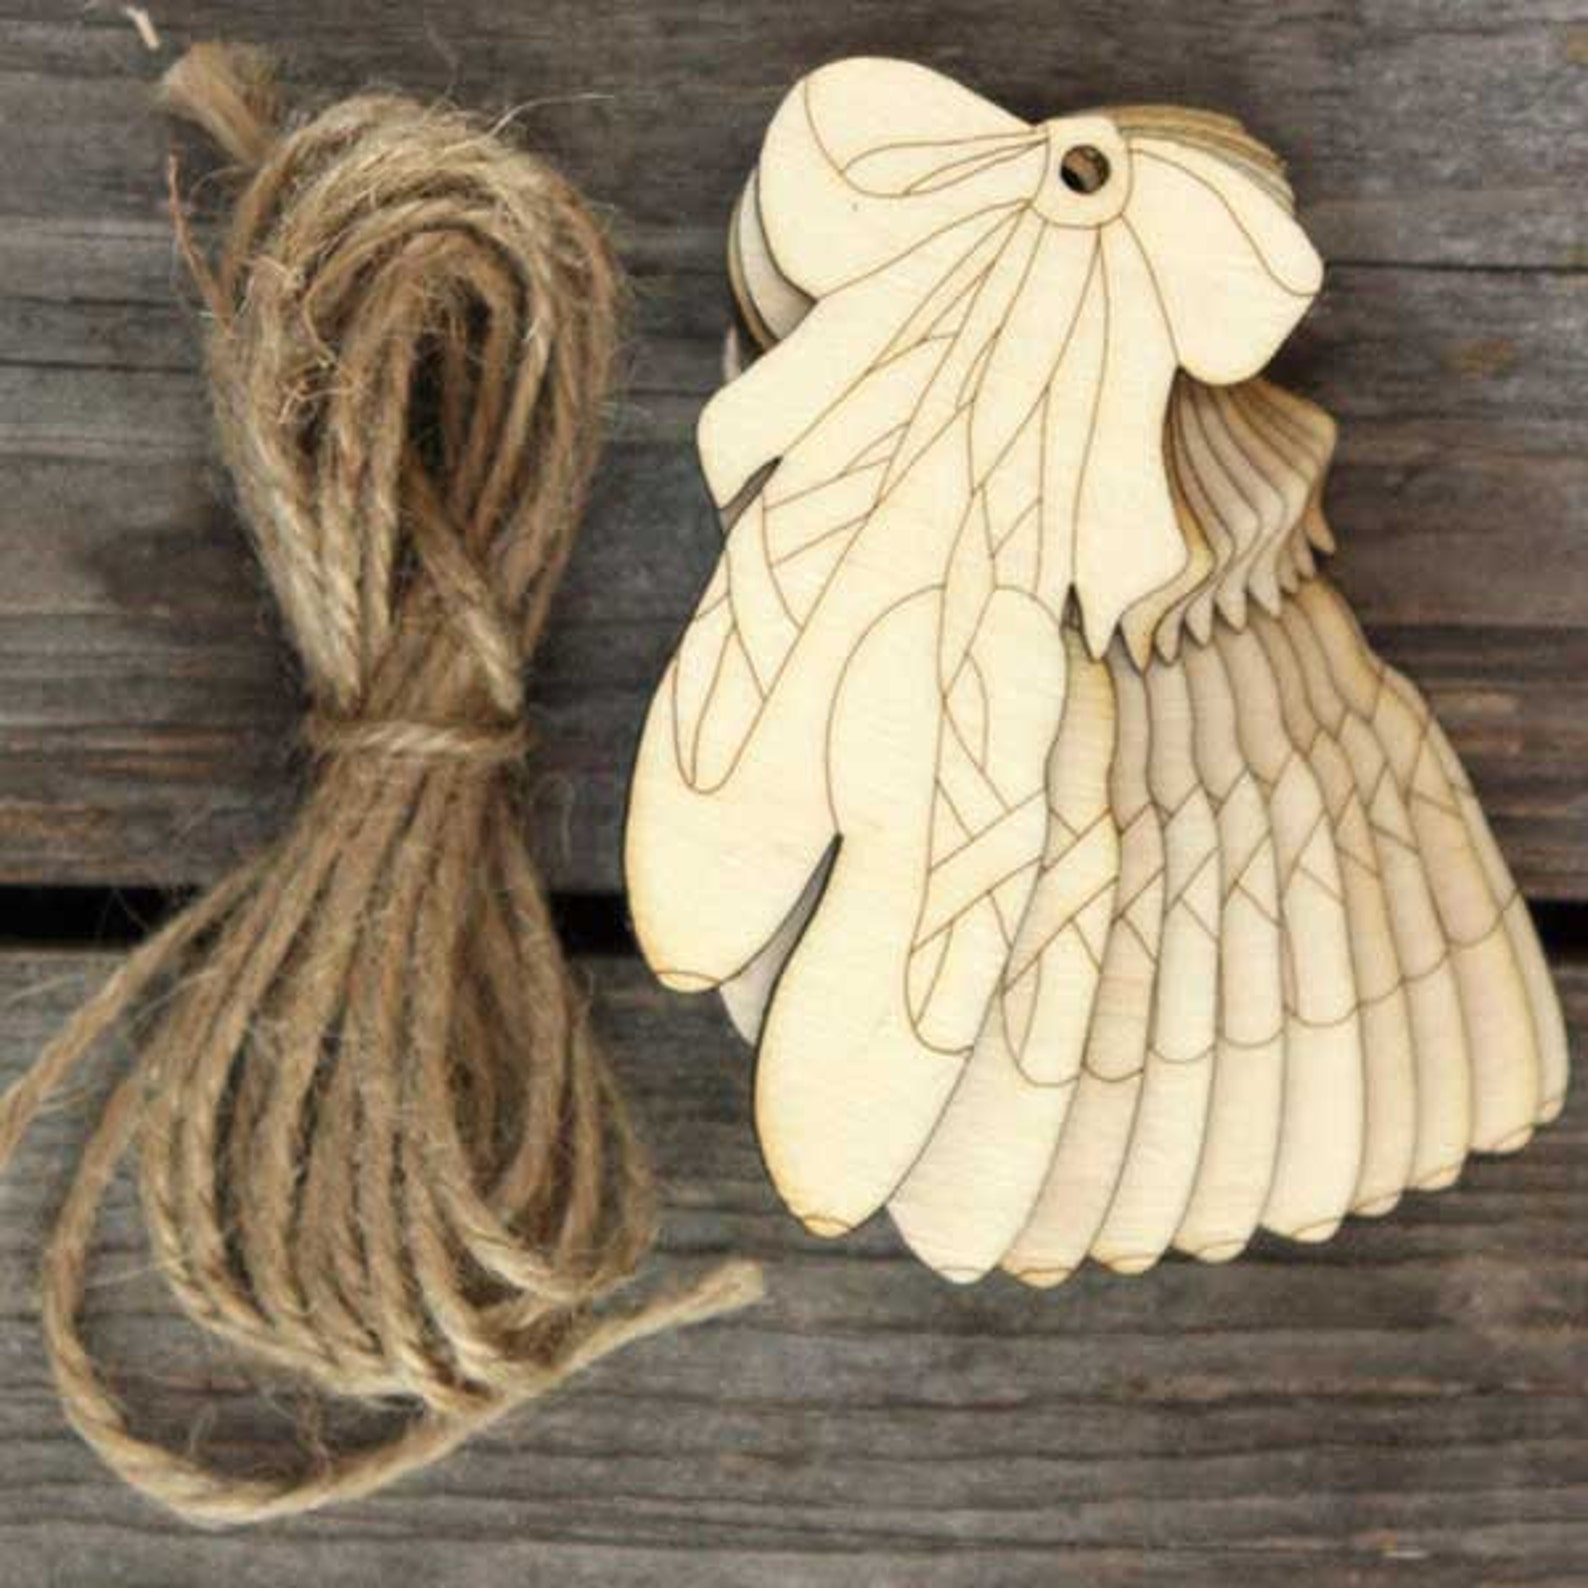 10x wooden hanging ballet shoes craft shapes 3mm plywood with detail